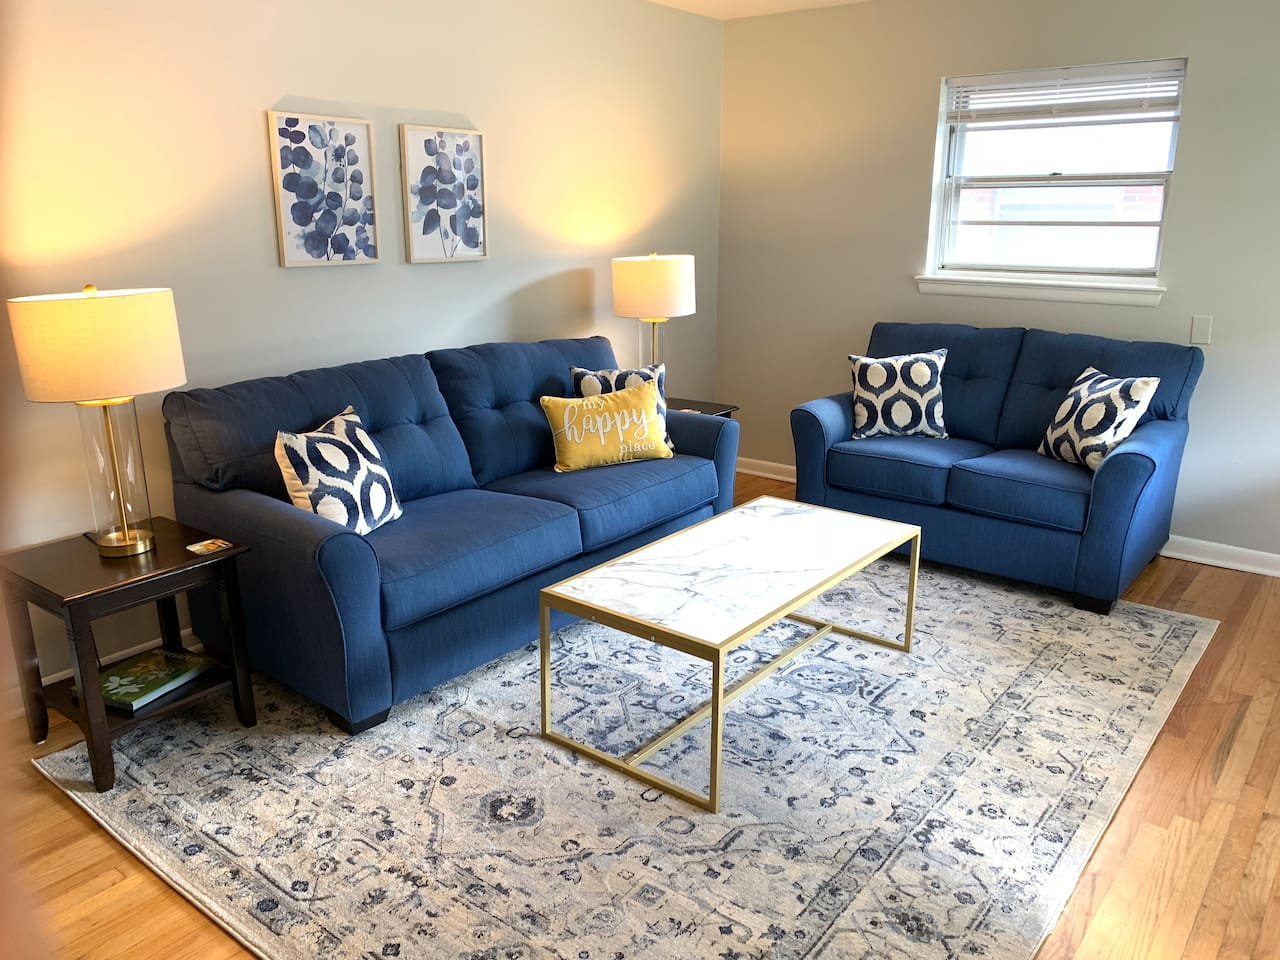 Rest and relax or enjoy company in the cozy living room.